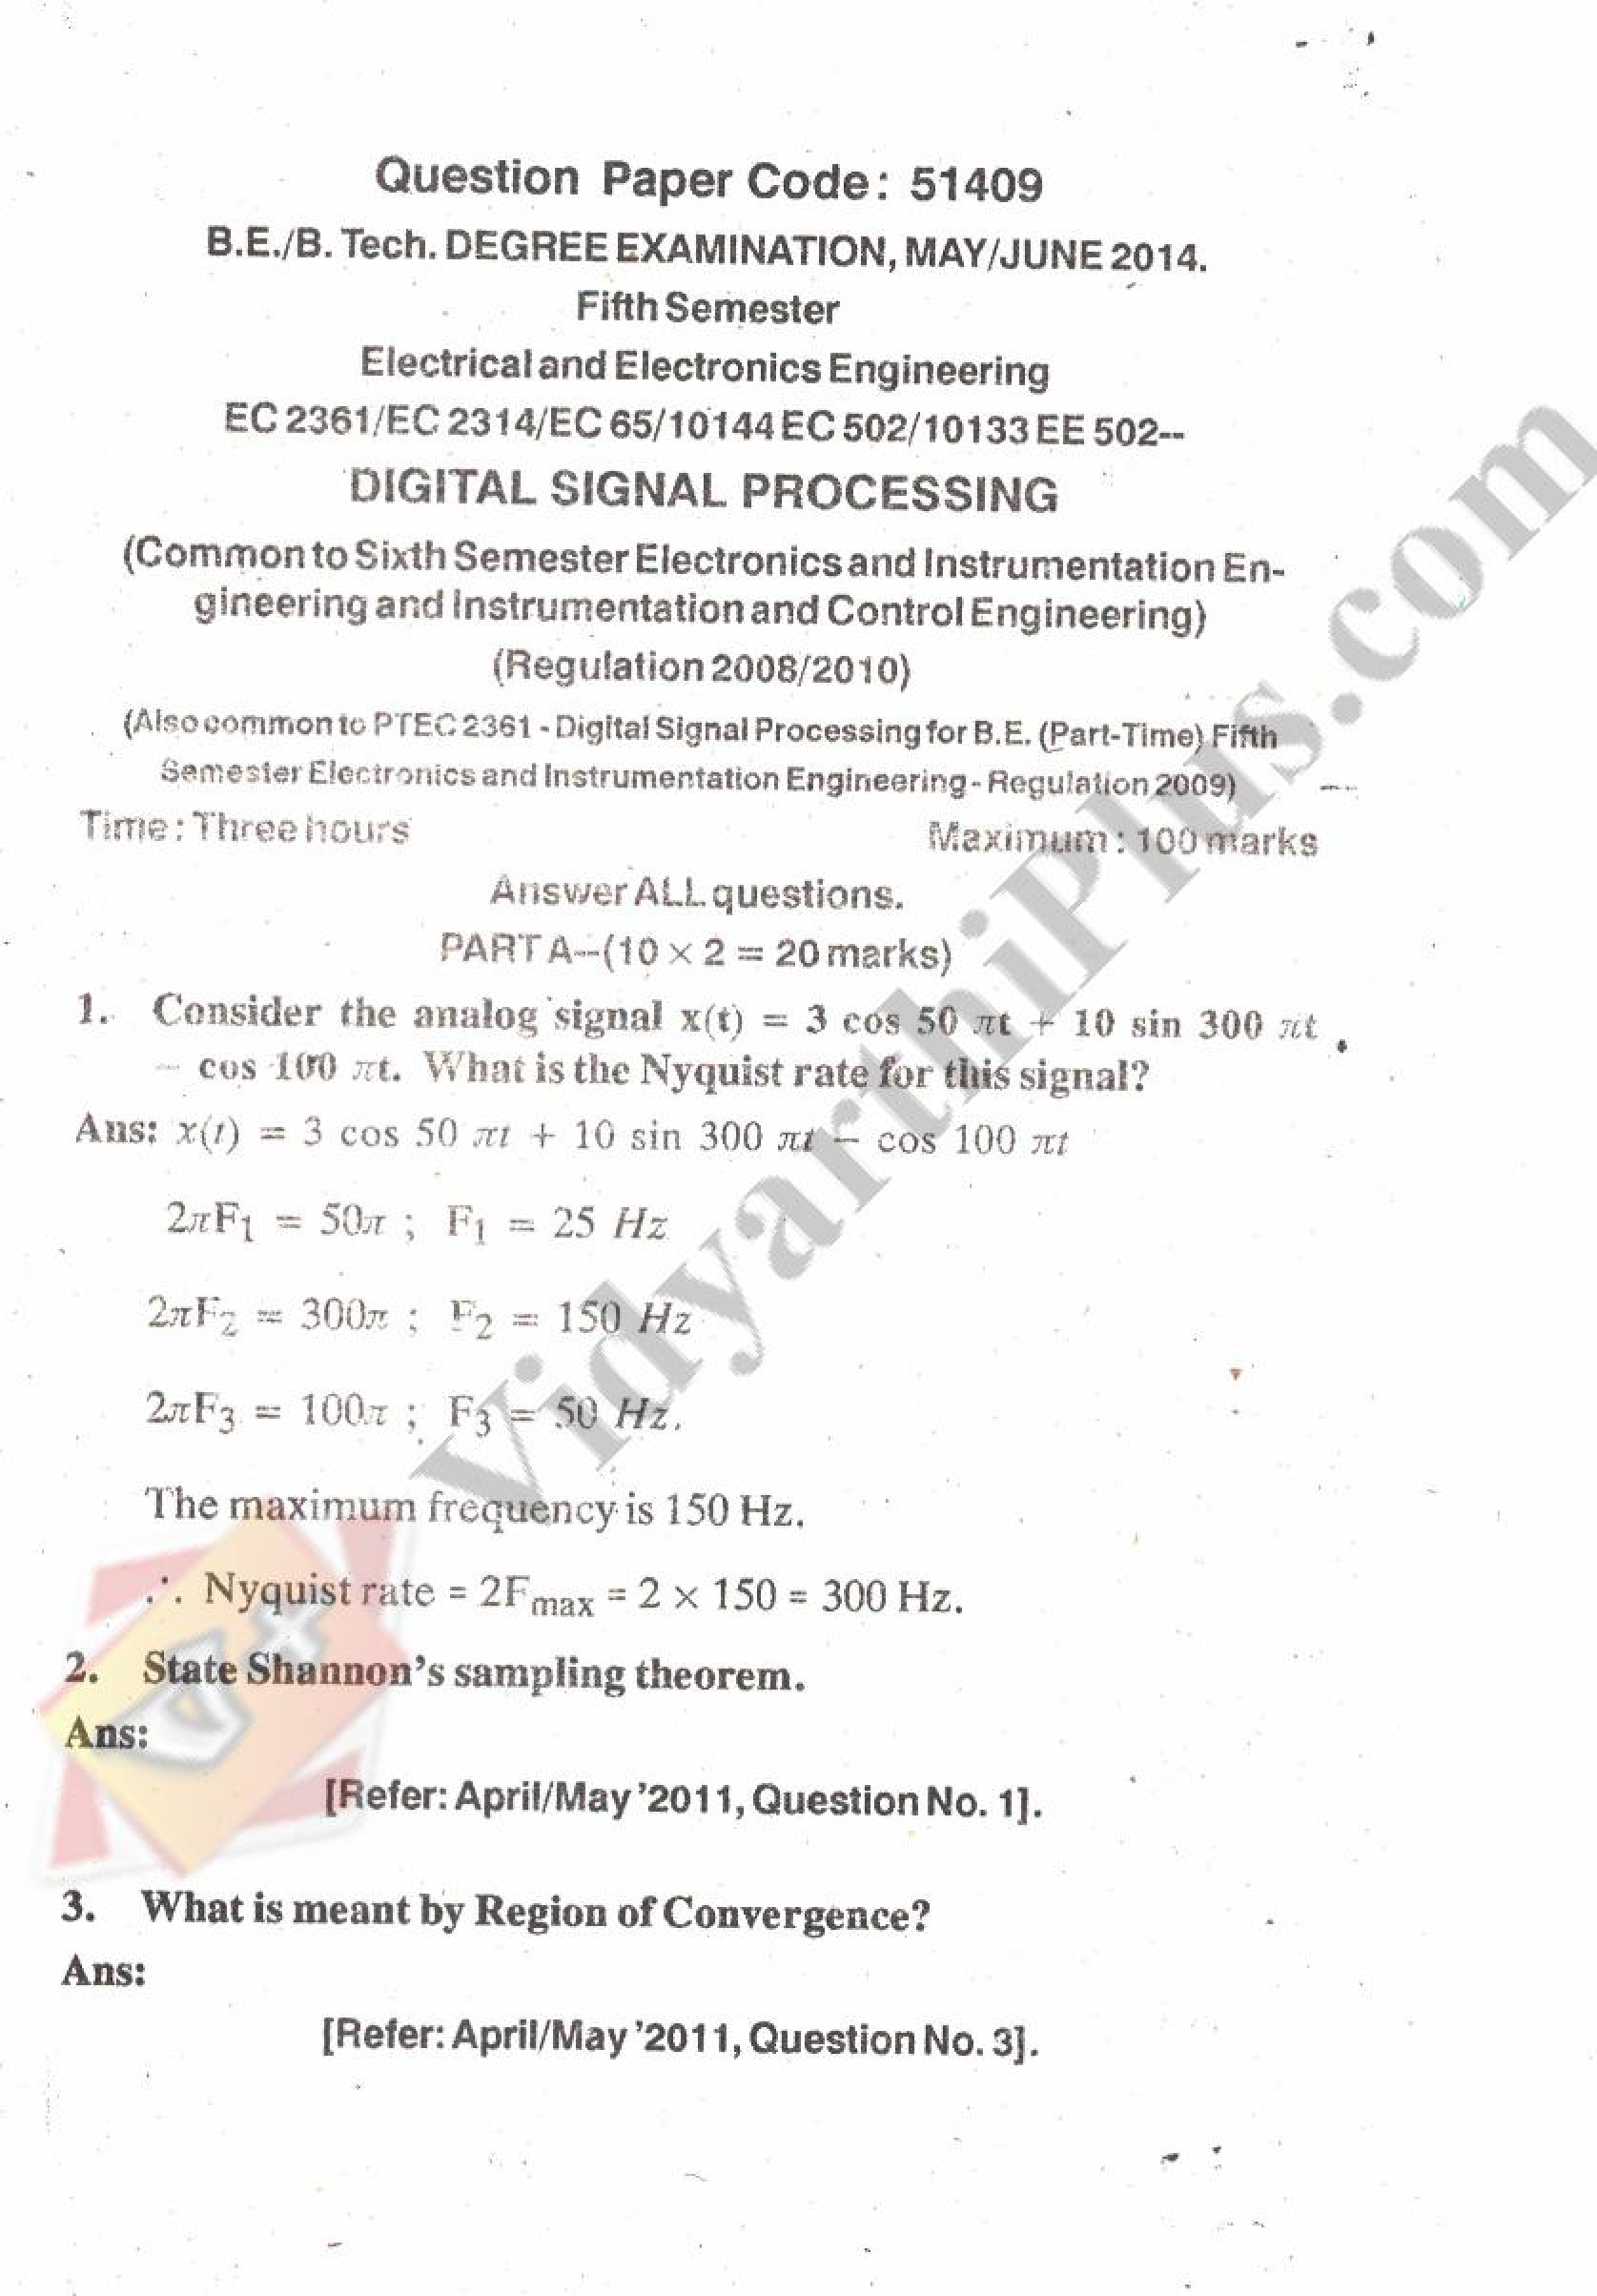 Digital Signal Processing Solved Question Paper 2015 Edition